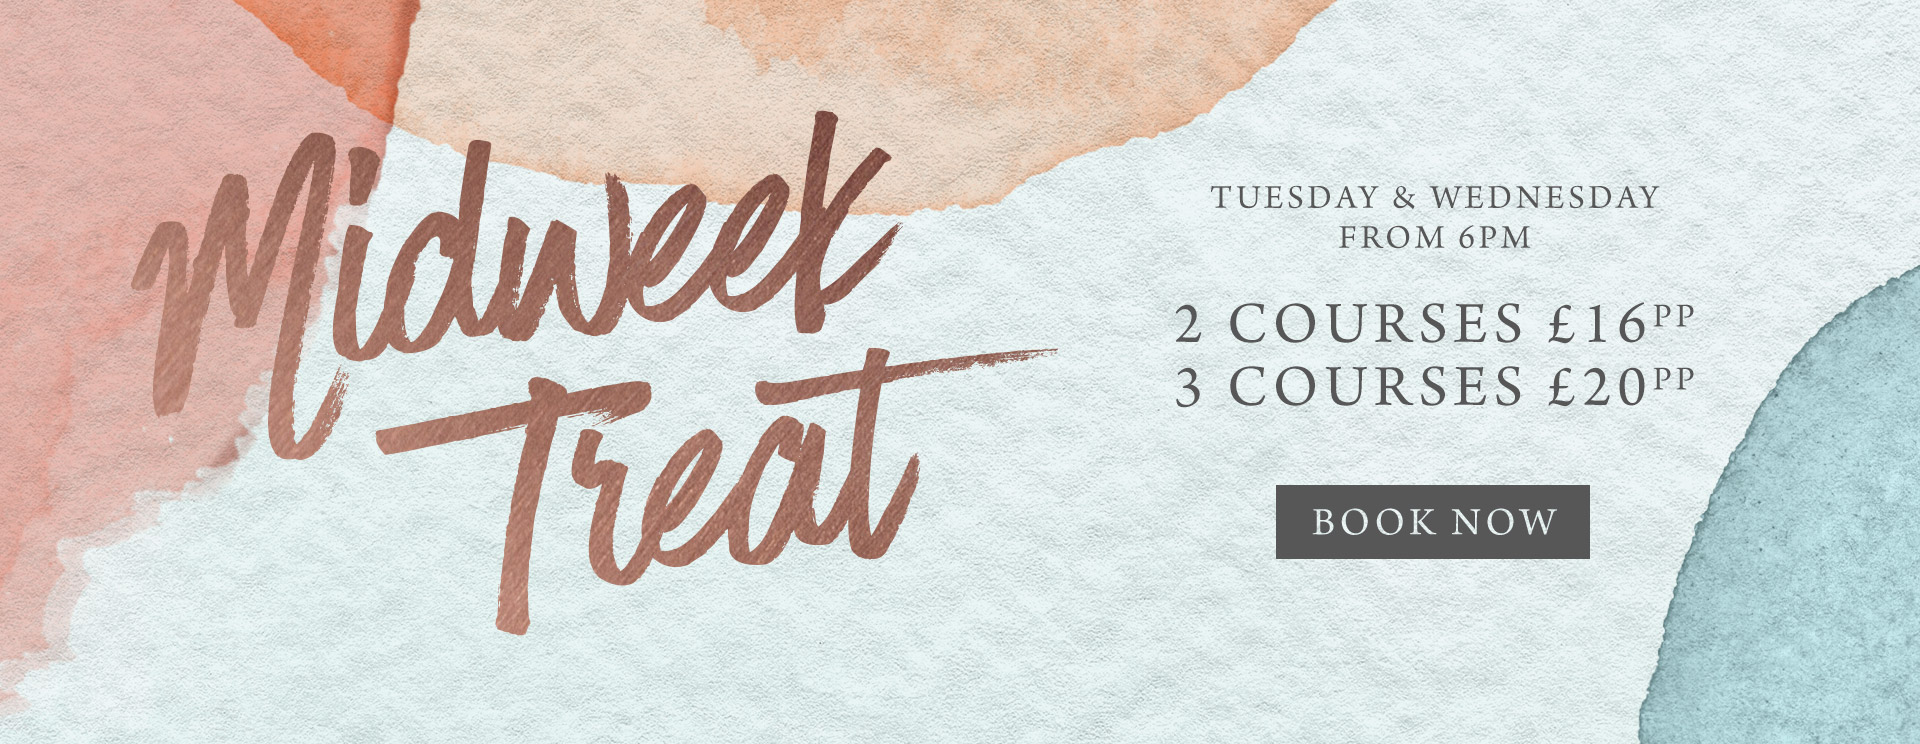 Midweek treat at The Green Man - Book now